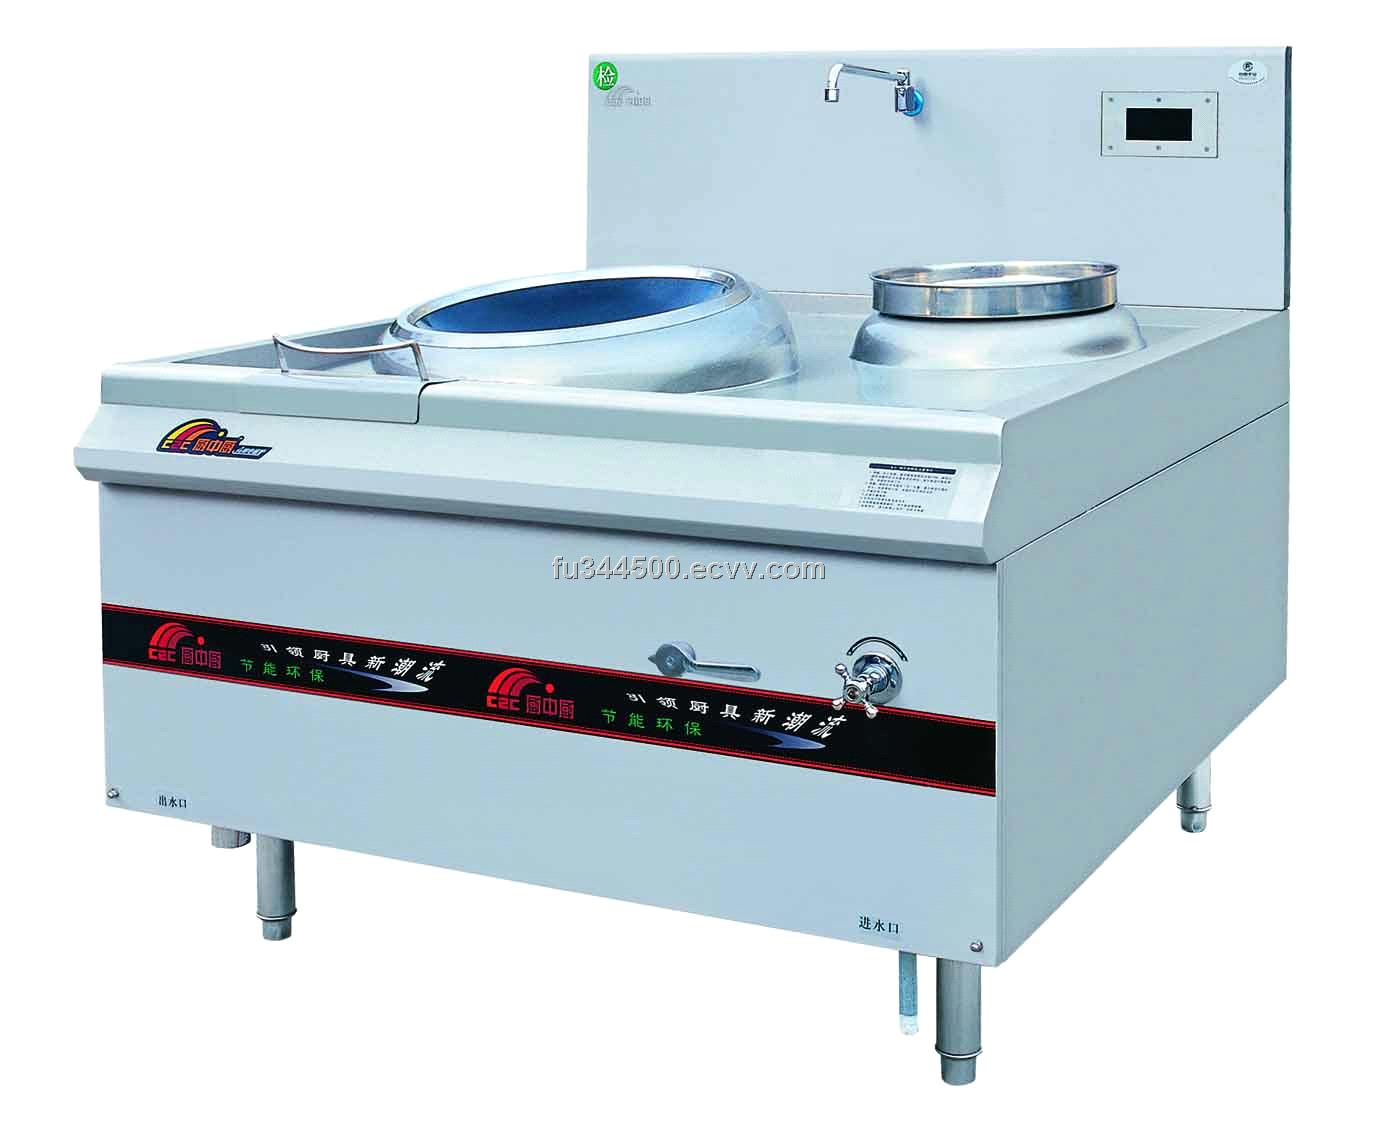 Single ring induction wok with rear pot purchasing, souring agent ...